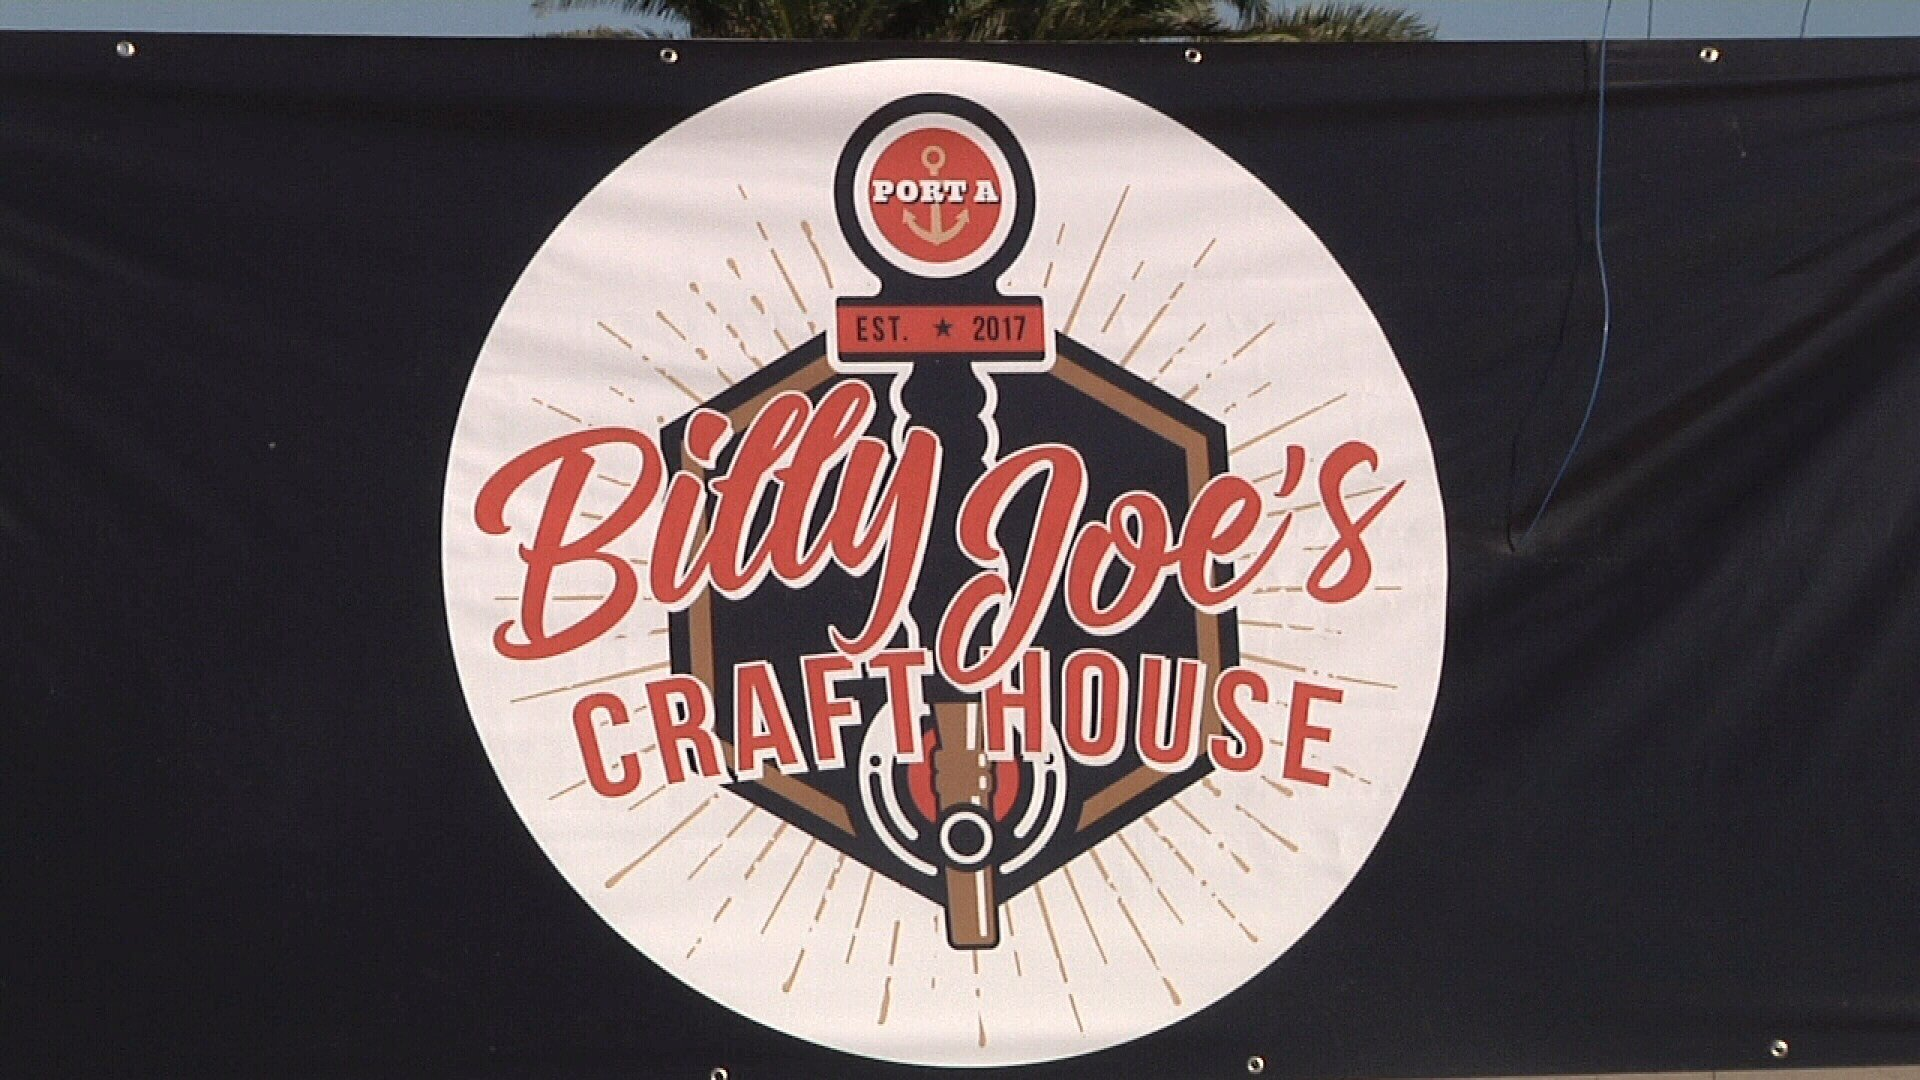 Billy Joe's Craft House is located in Port Aransas and opens its doors on December 4th.